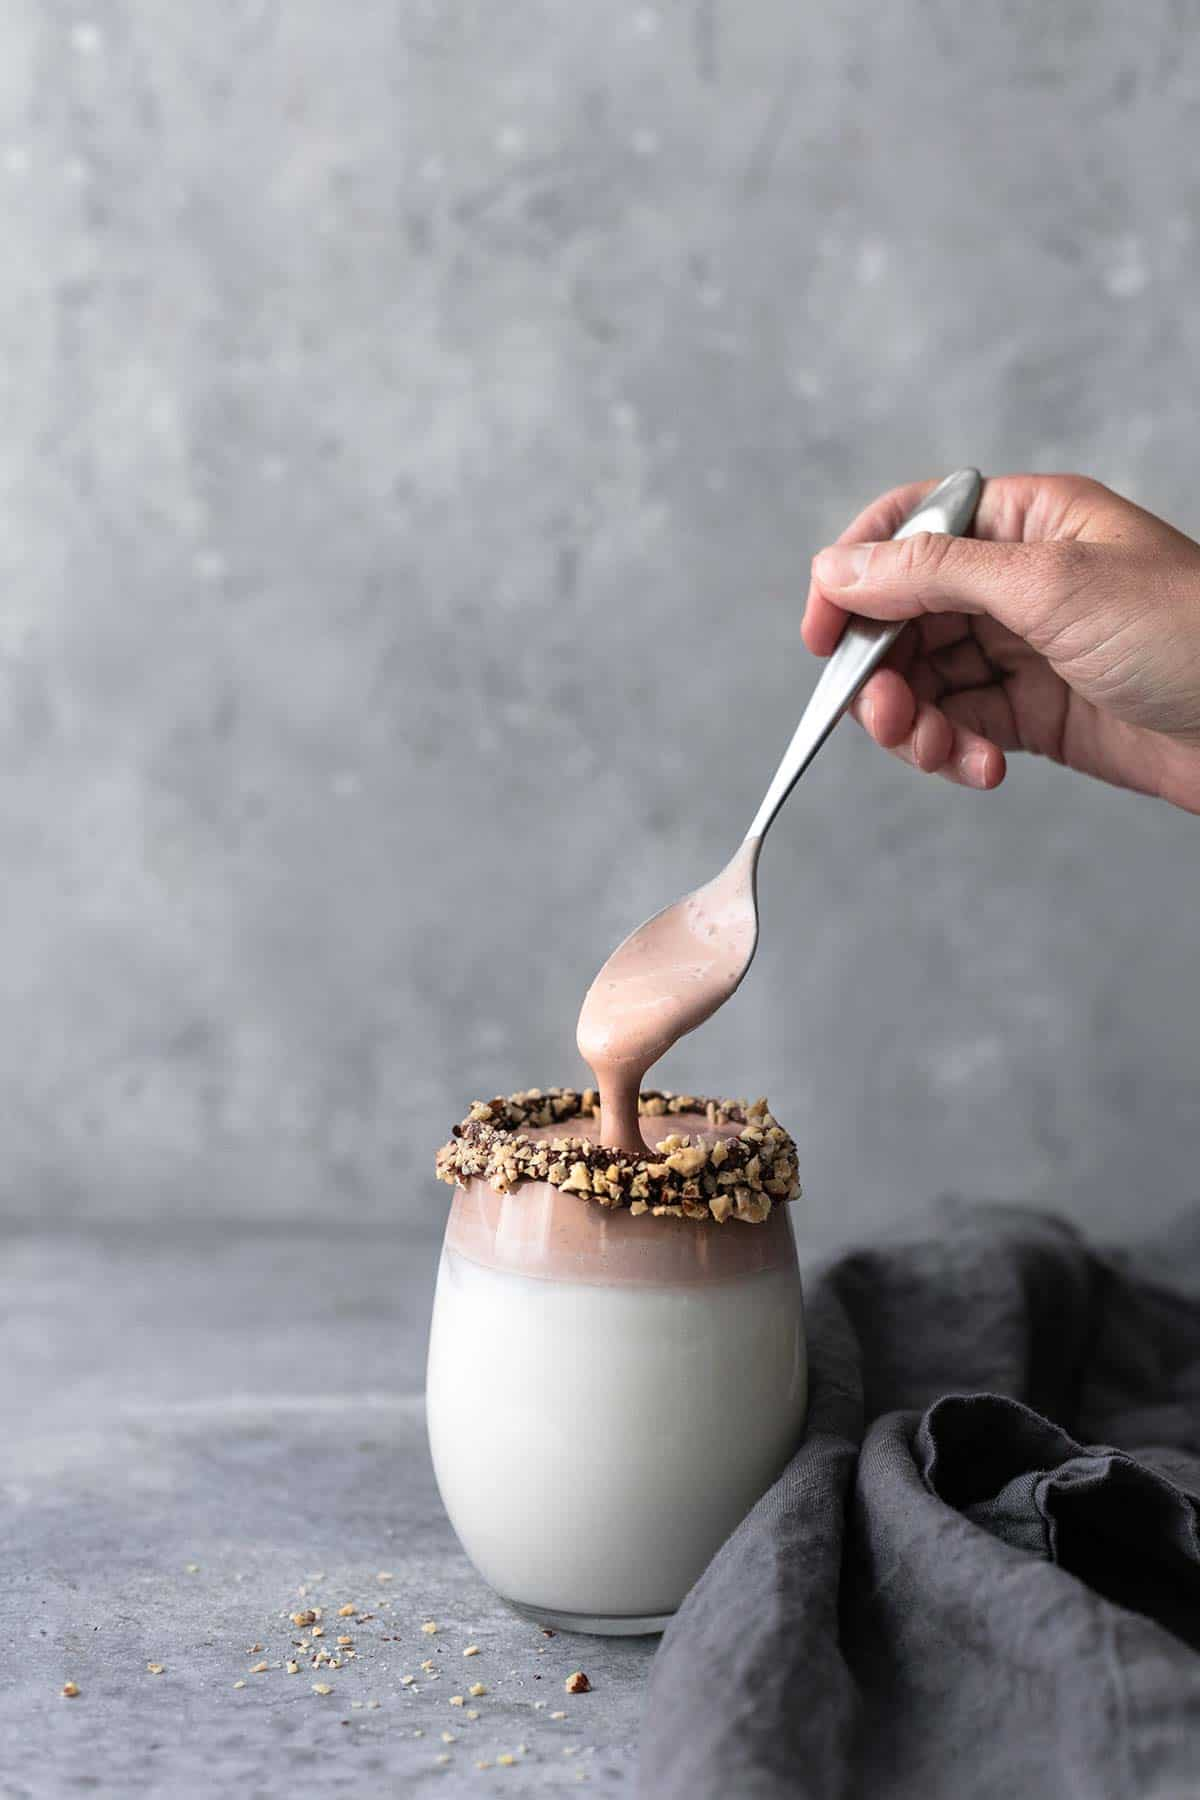 a hand picking up a spoon from a glass of whipped milk: three ways.